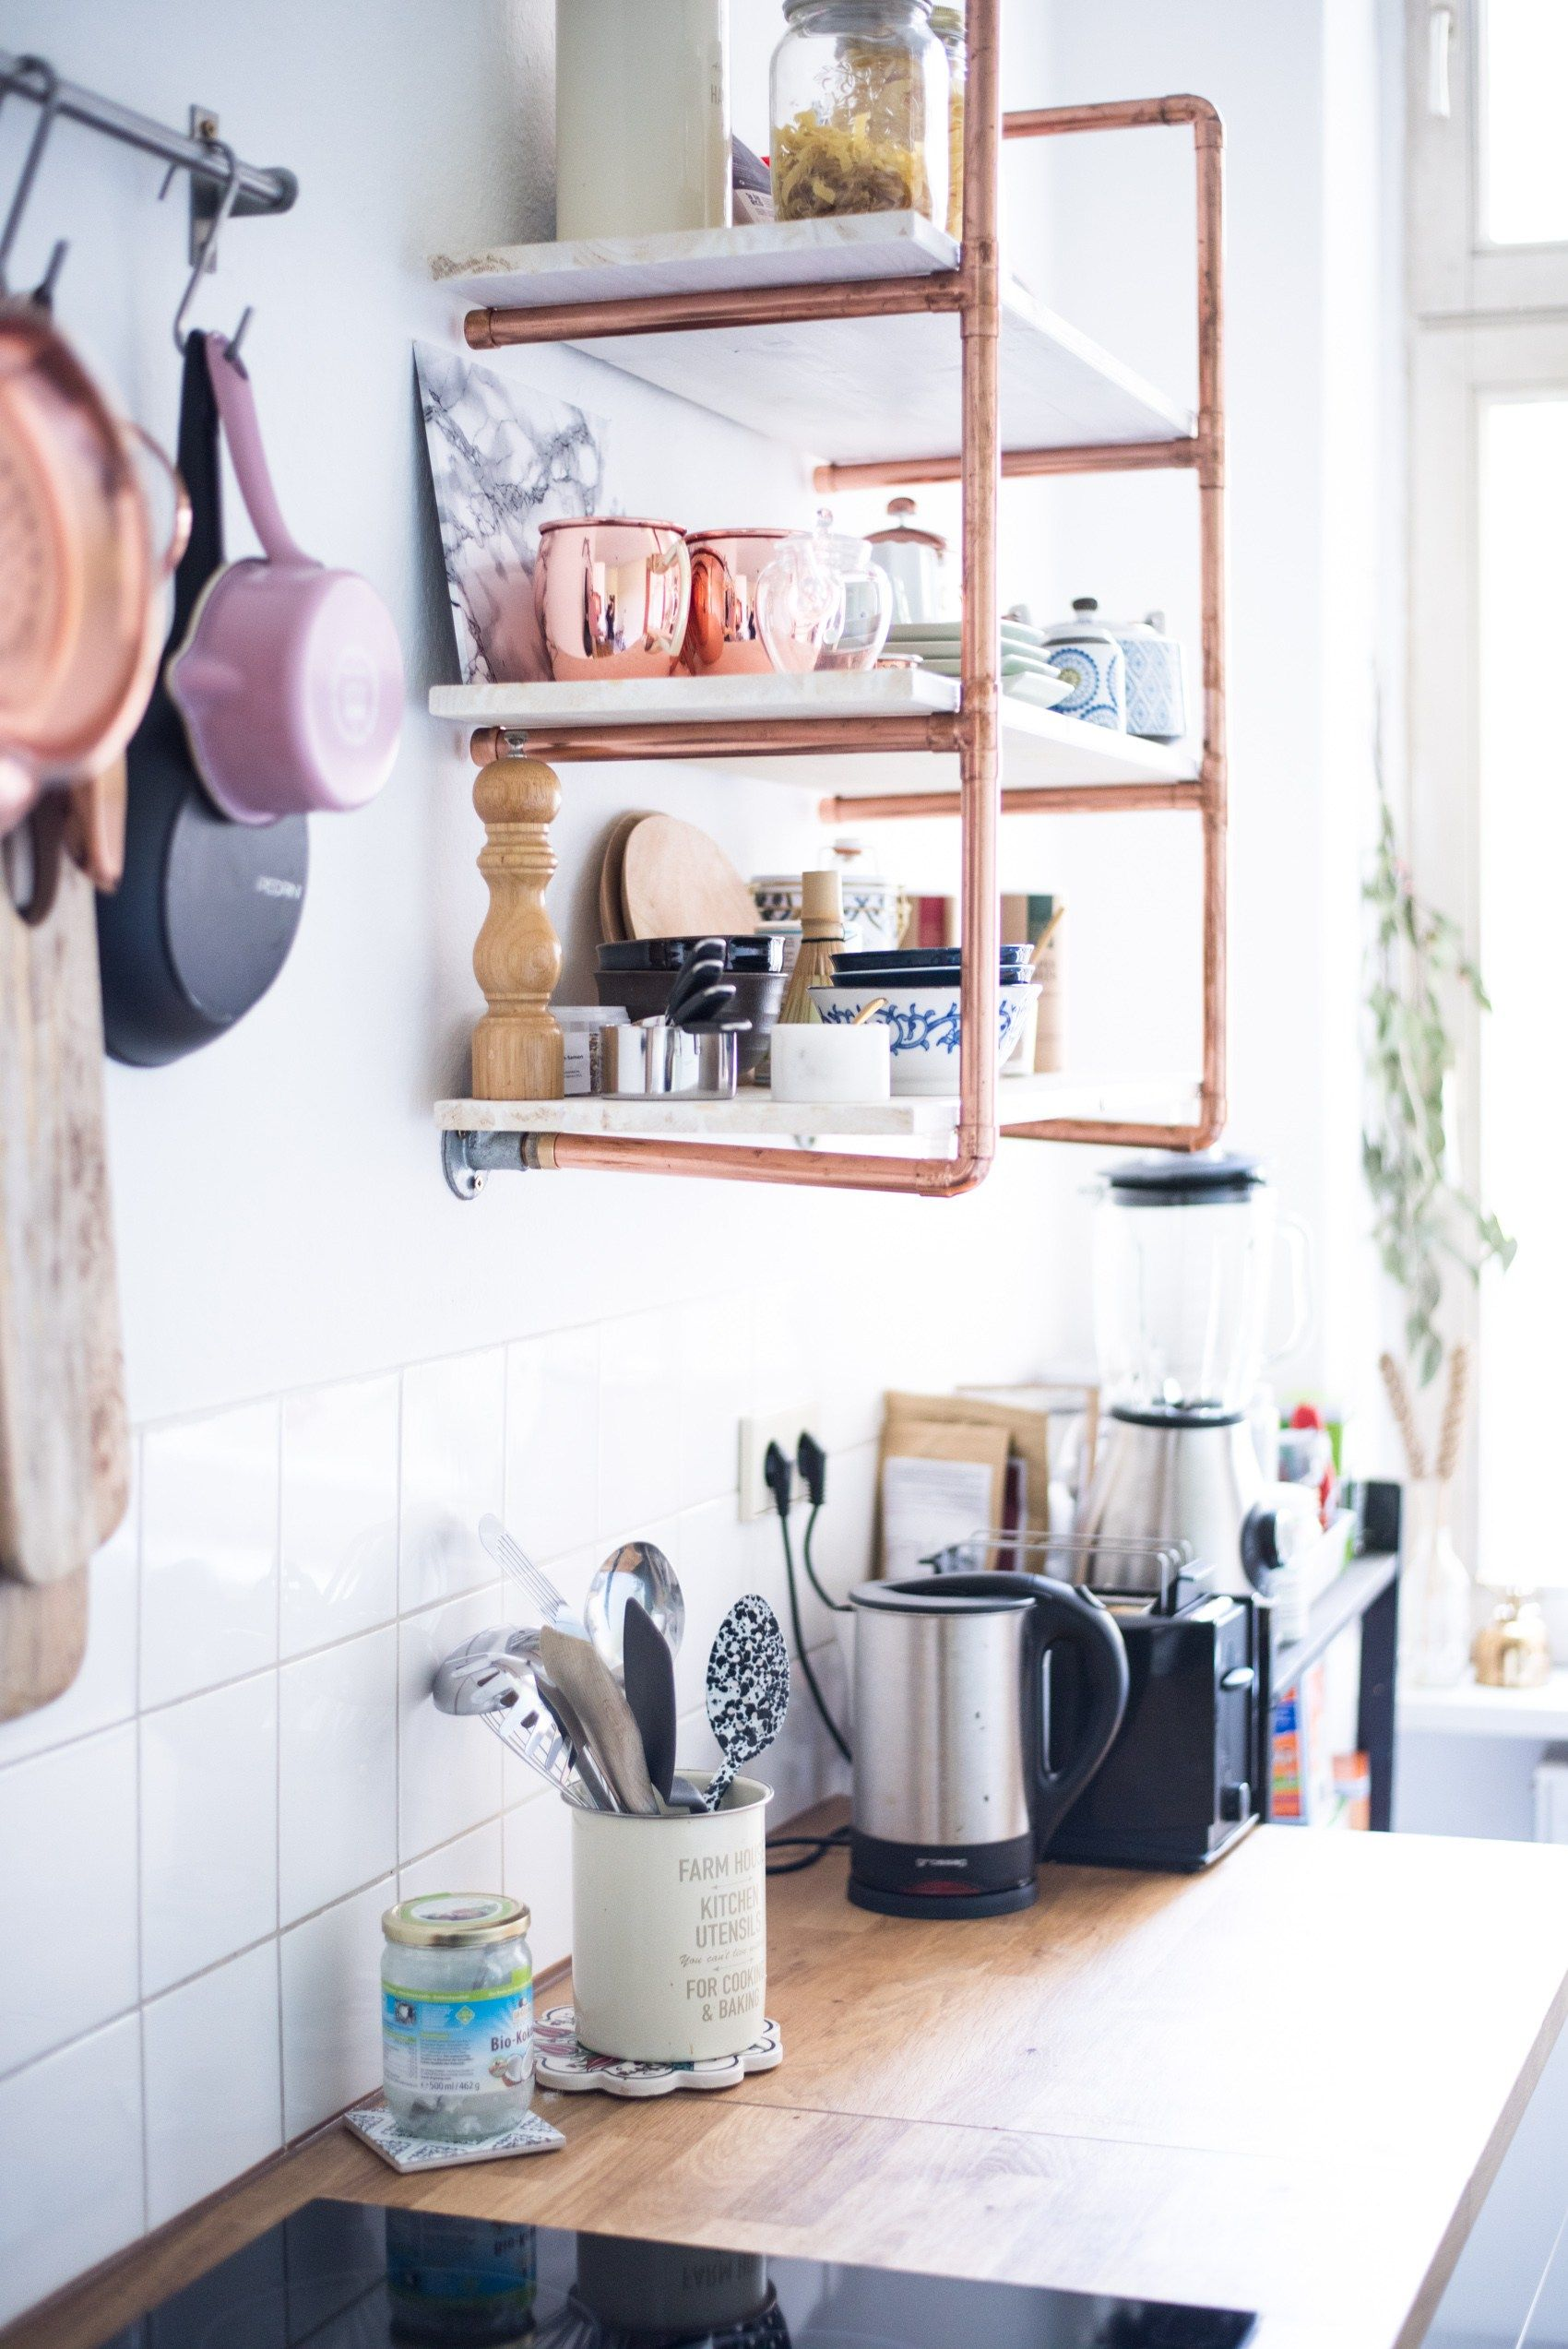 10 low budget interior tips for your kitchen Haus umbau